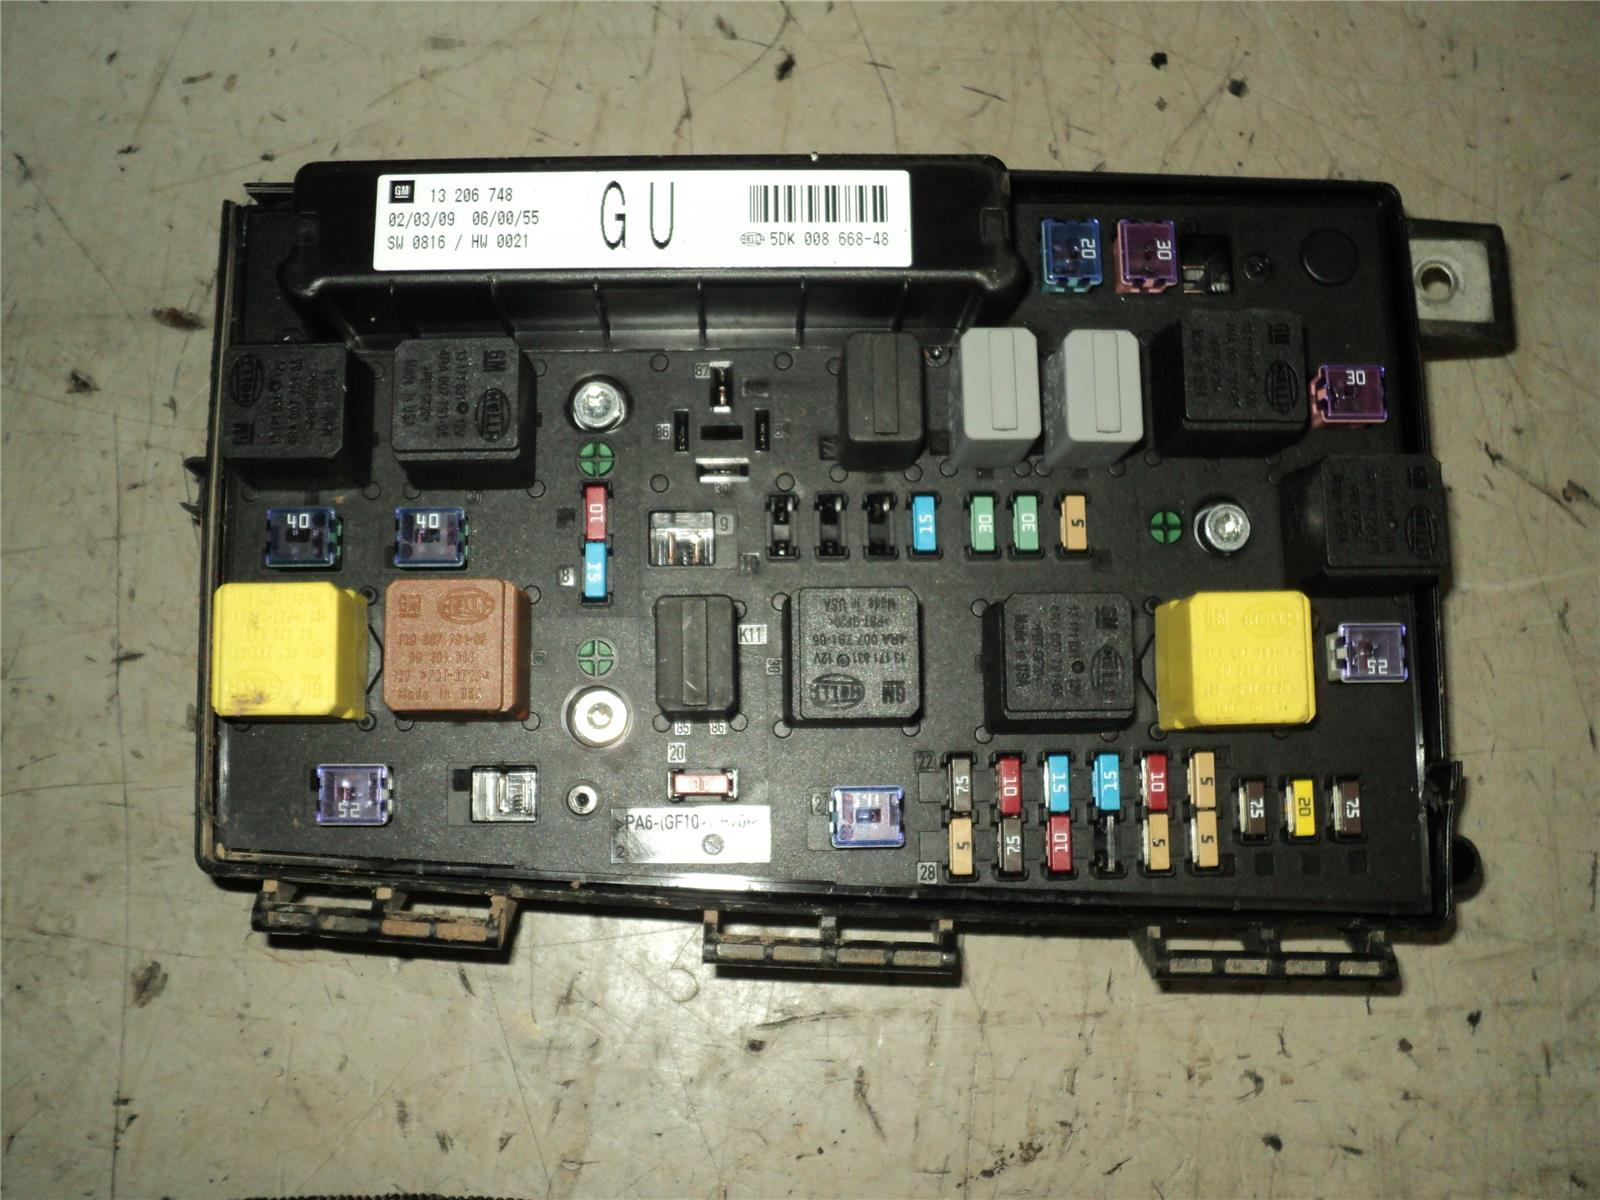 Astra Fuse Box 2007 Free Wiring Diagram For You Vauxhall 52 2006 To 2011 Diesel Manual Van Location